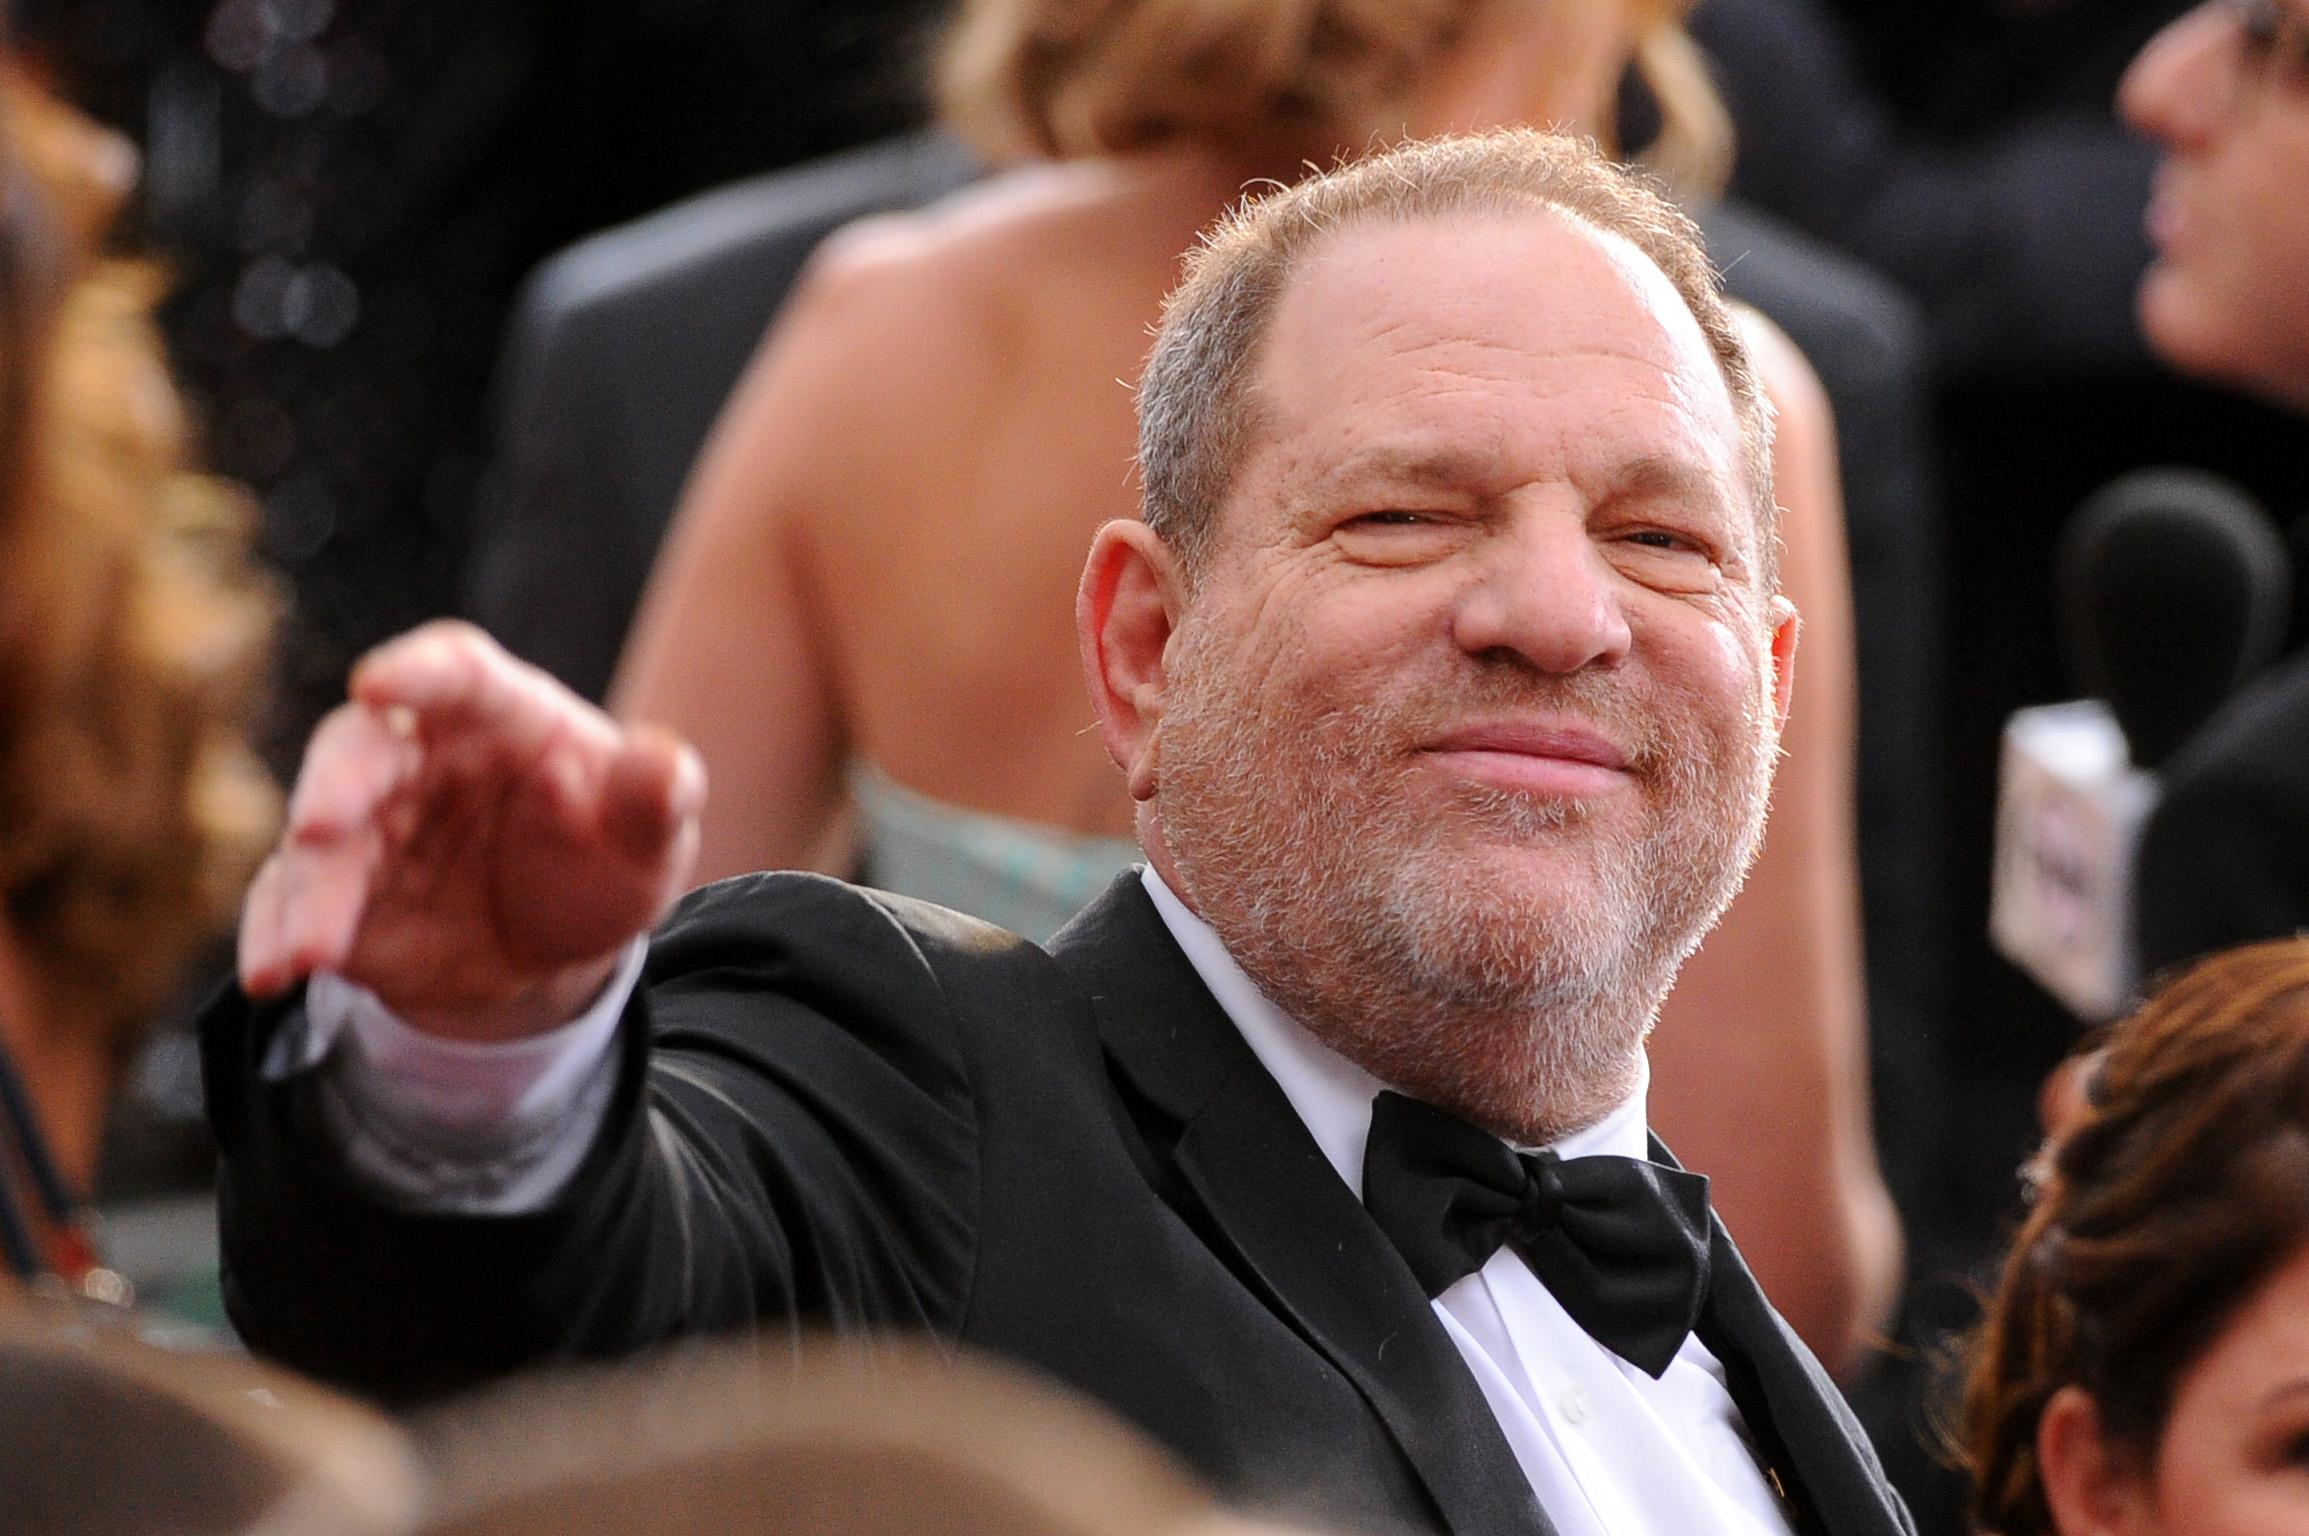 Journo Makes Disturbing Claims Harvey Weinstein Masturbated In Front Of Her